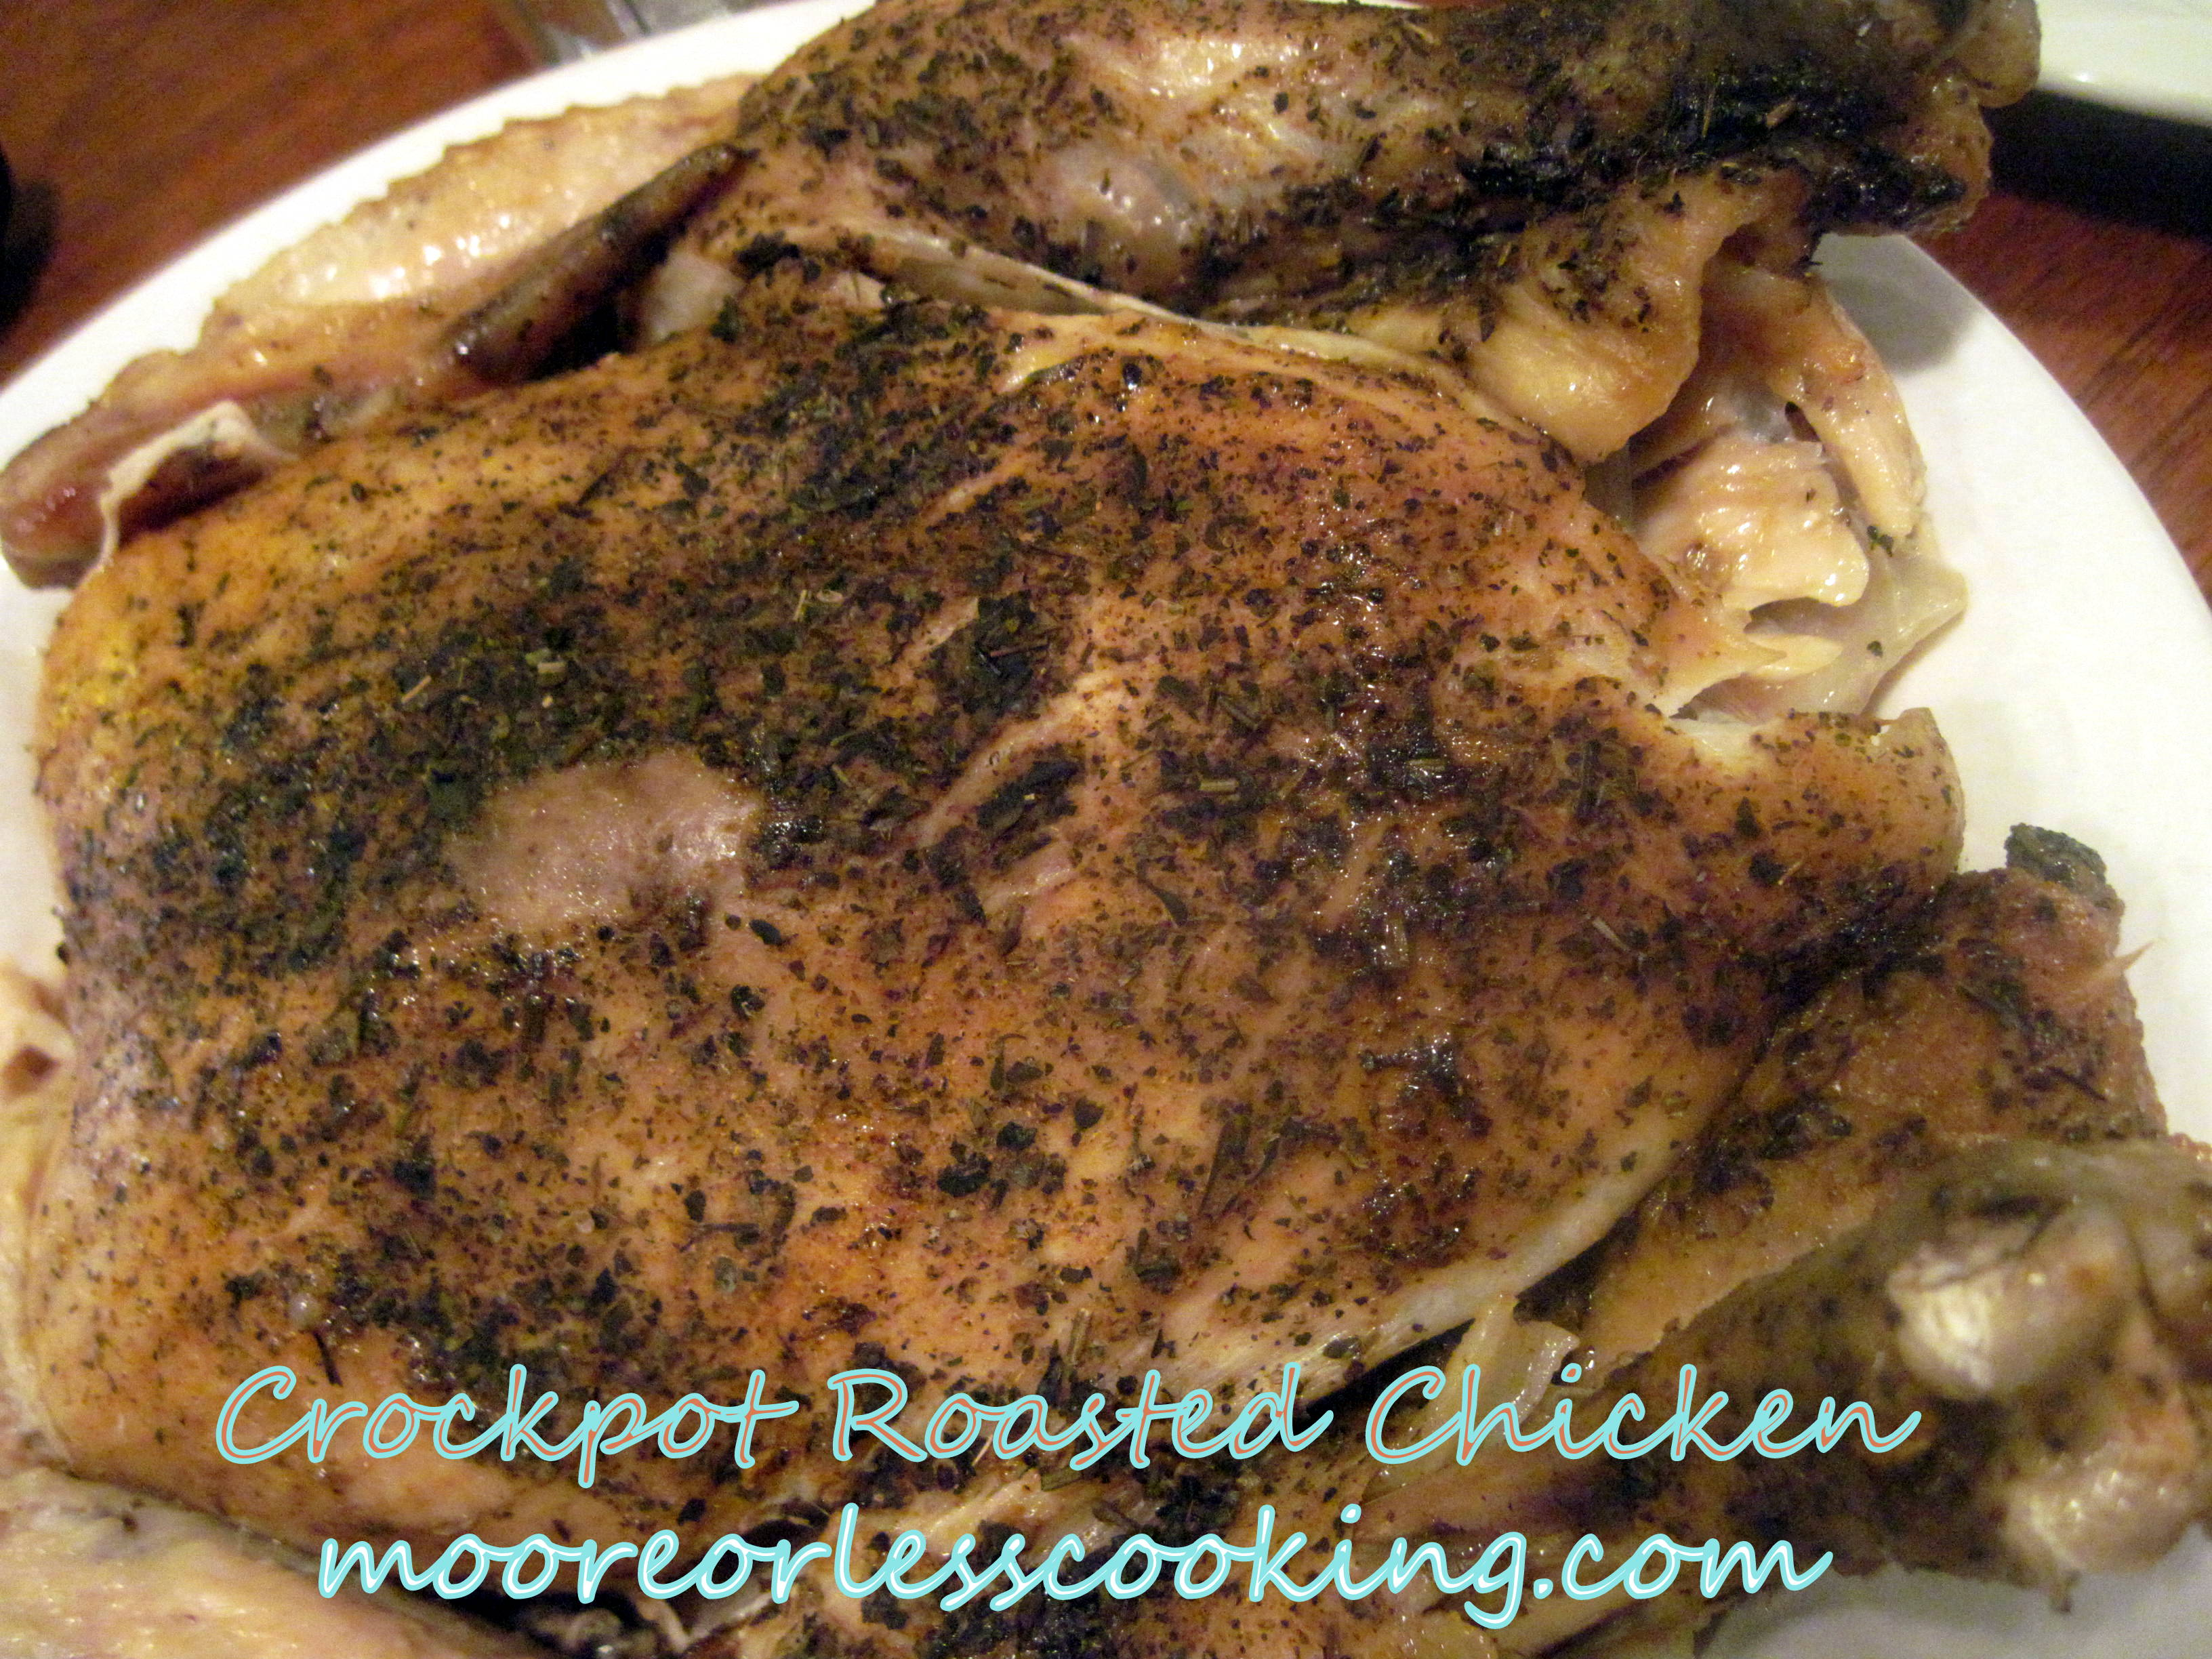 CROCKPOT ROASTED CHICKEN